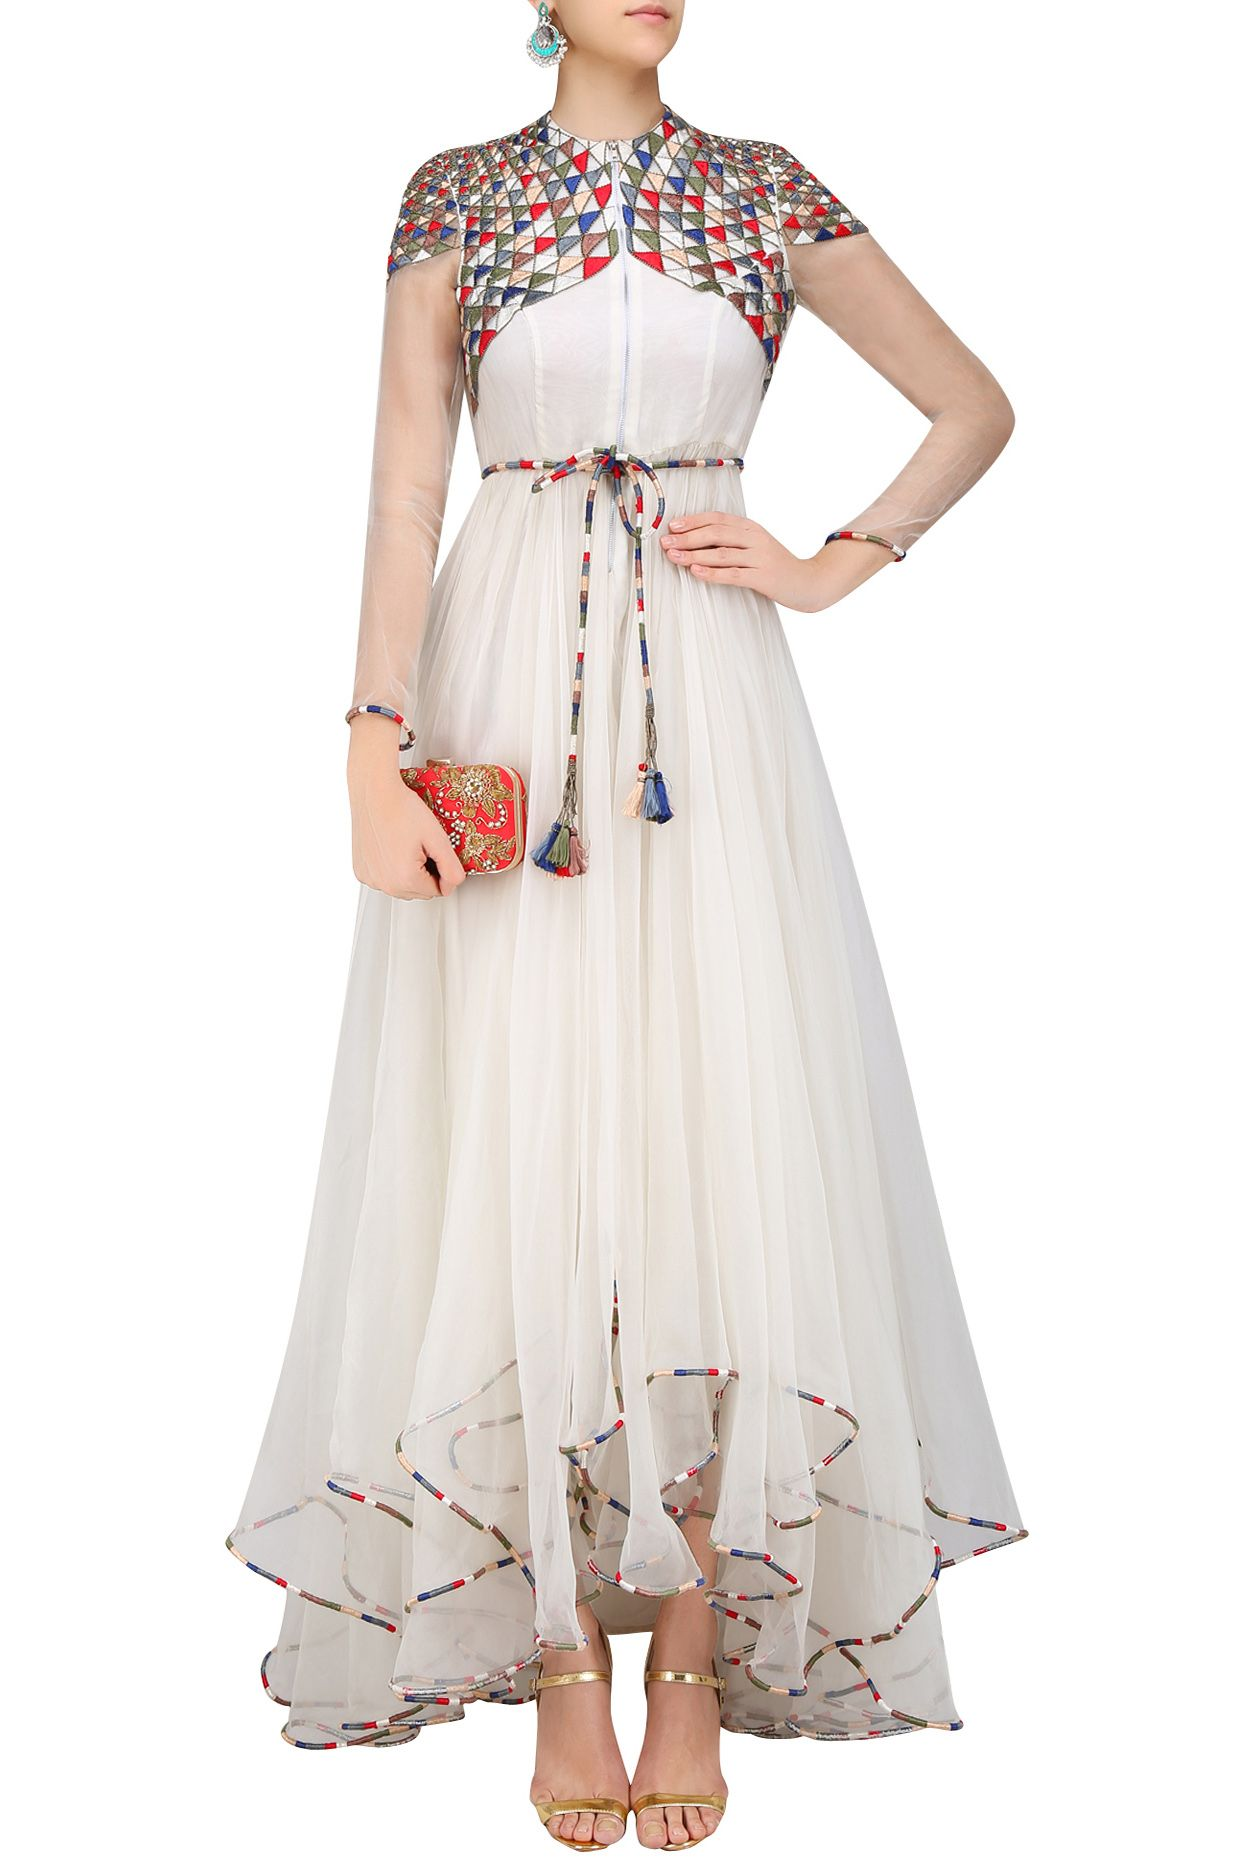 2ce9f44f0ebf5 Online Luxury Fashion Store for Women and Men  Buy Men s and Women s Apparel